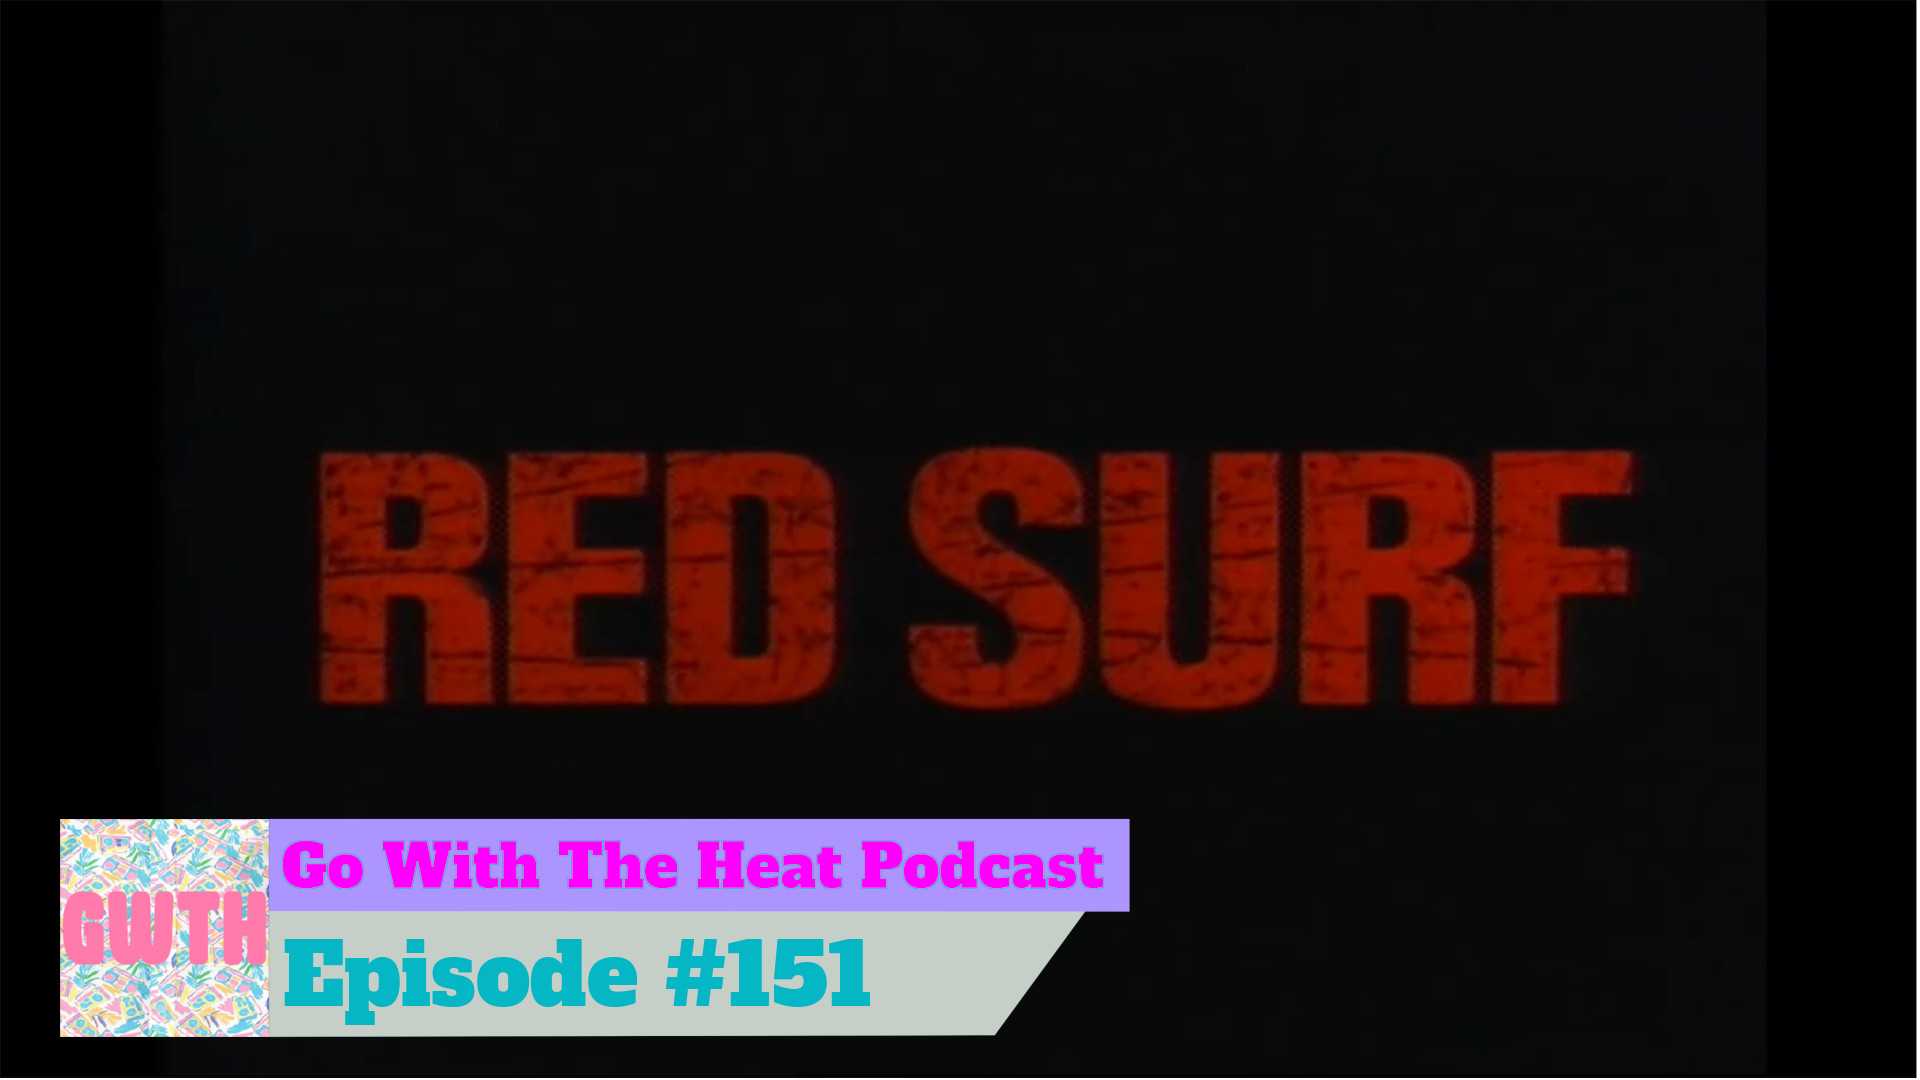 Go With The Heat 151 – You Should Watch It: Red Surf